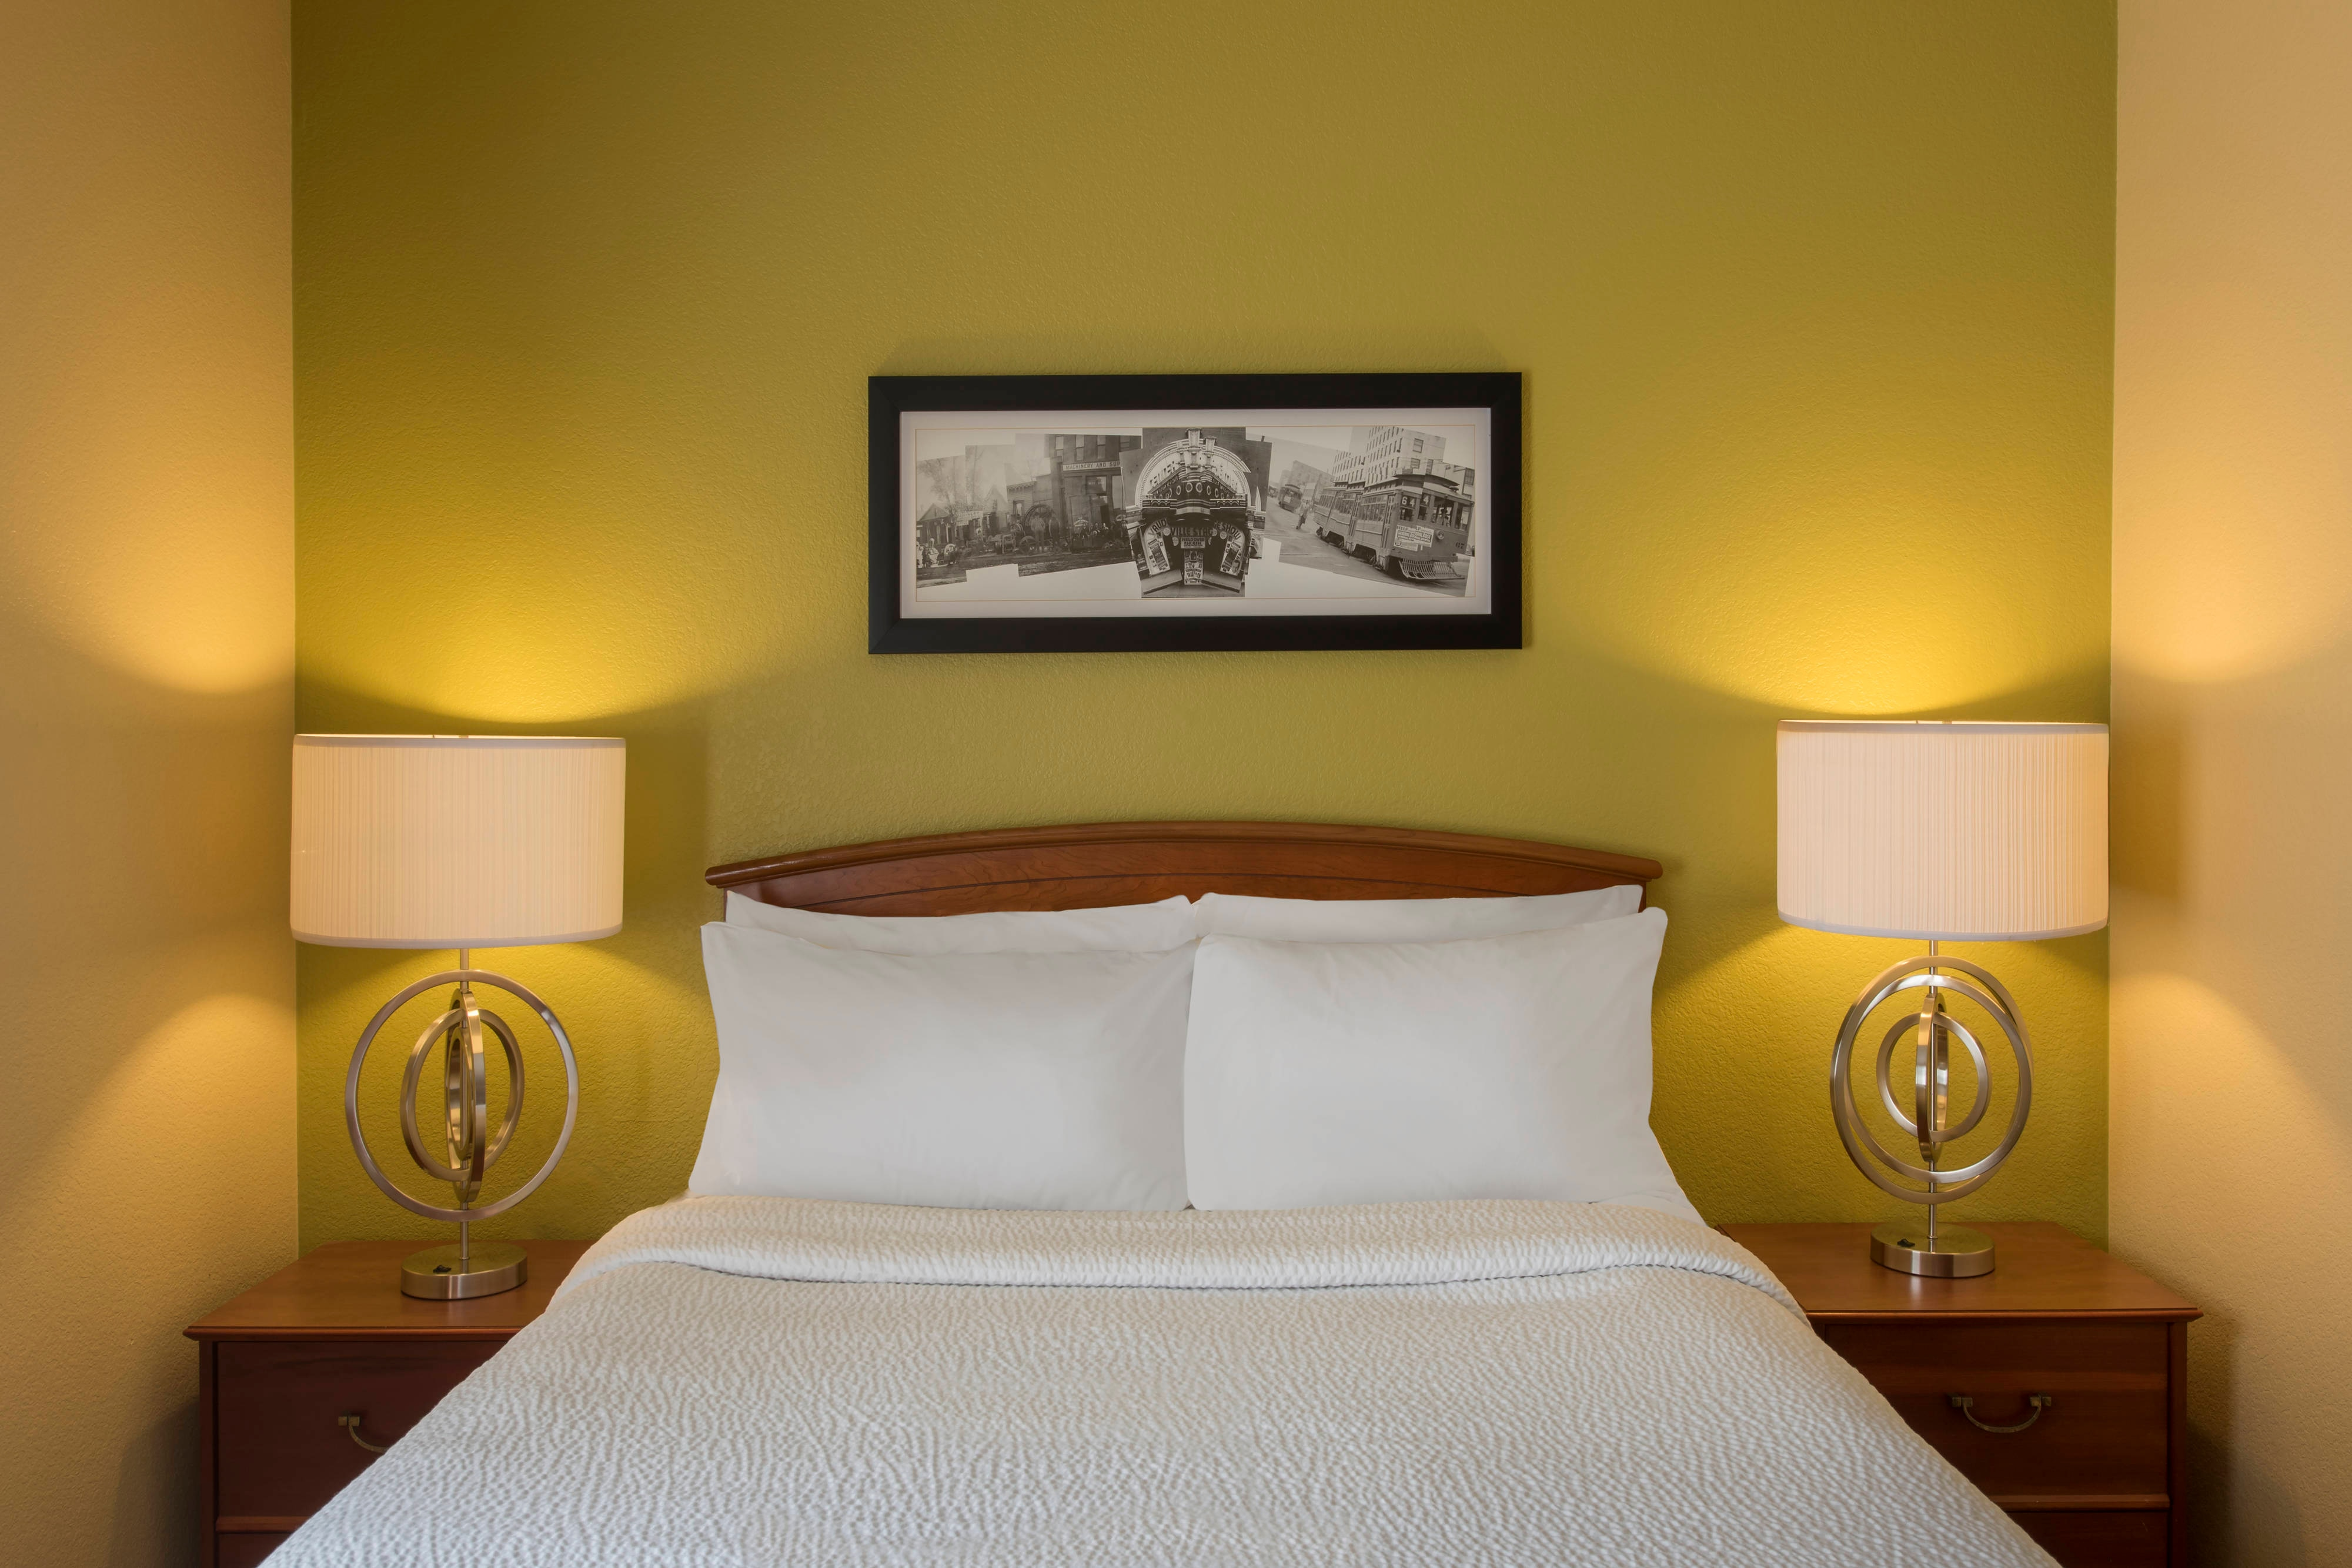 Extended stay englewood co suites in denver co suite bedroom solutioingenieria Image collections